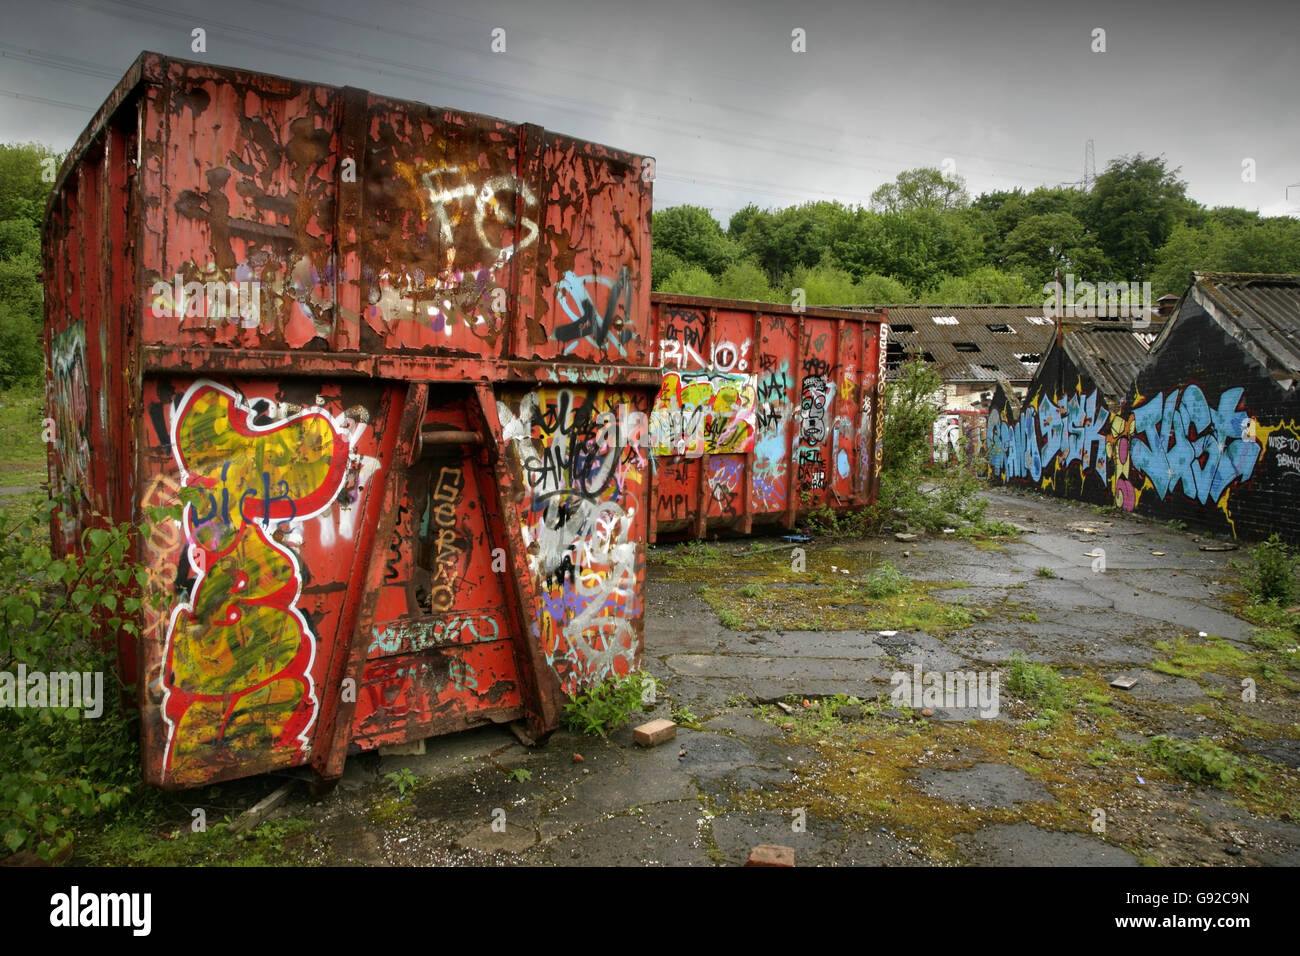 Graffiti And Vandalism On Shipping Containers At Abandoned Derelict Industrial Building